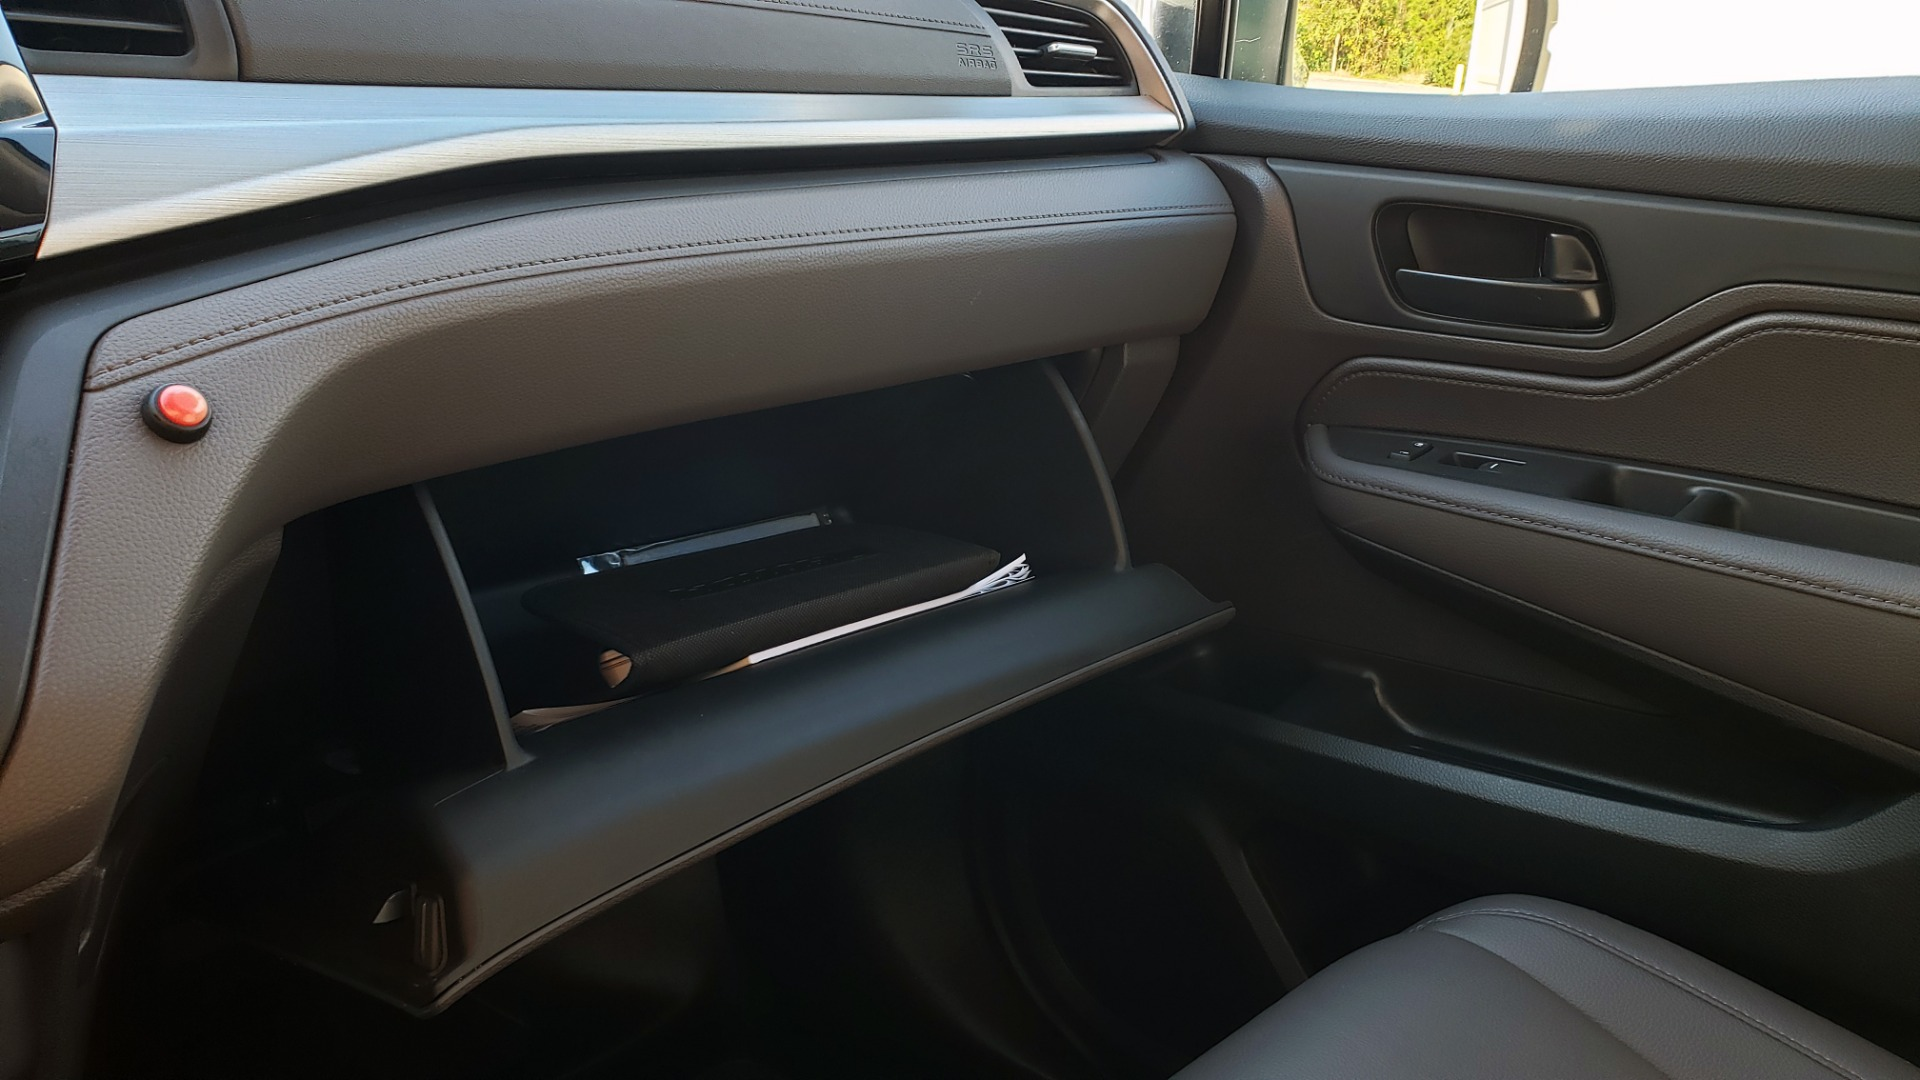 Used 2019 Honda ODYSSEY EX-L BRAUNABILITY / NAV / RES / LKA / BLUE-RAY / SUNROOF / REARVIEW for sale $49,999 at Formula Imports in Charlotte NC 28227 28